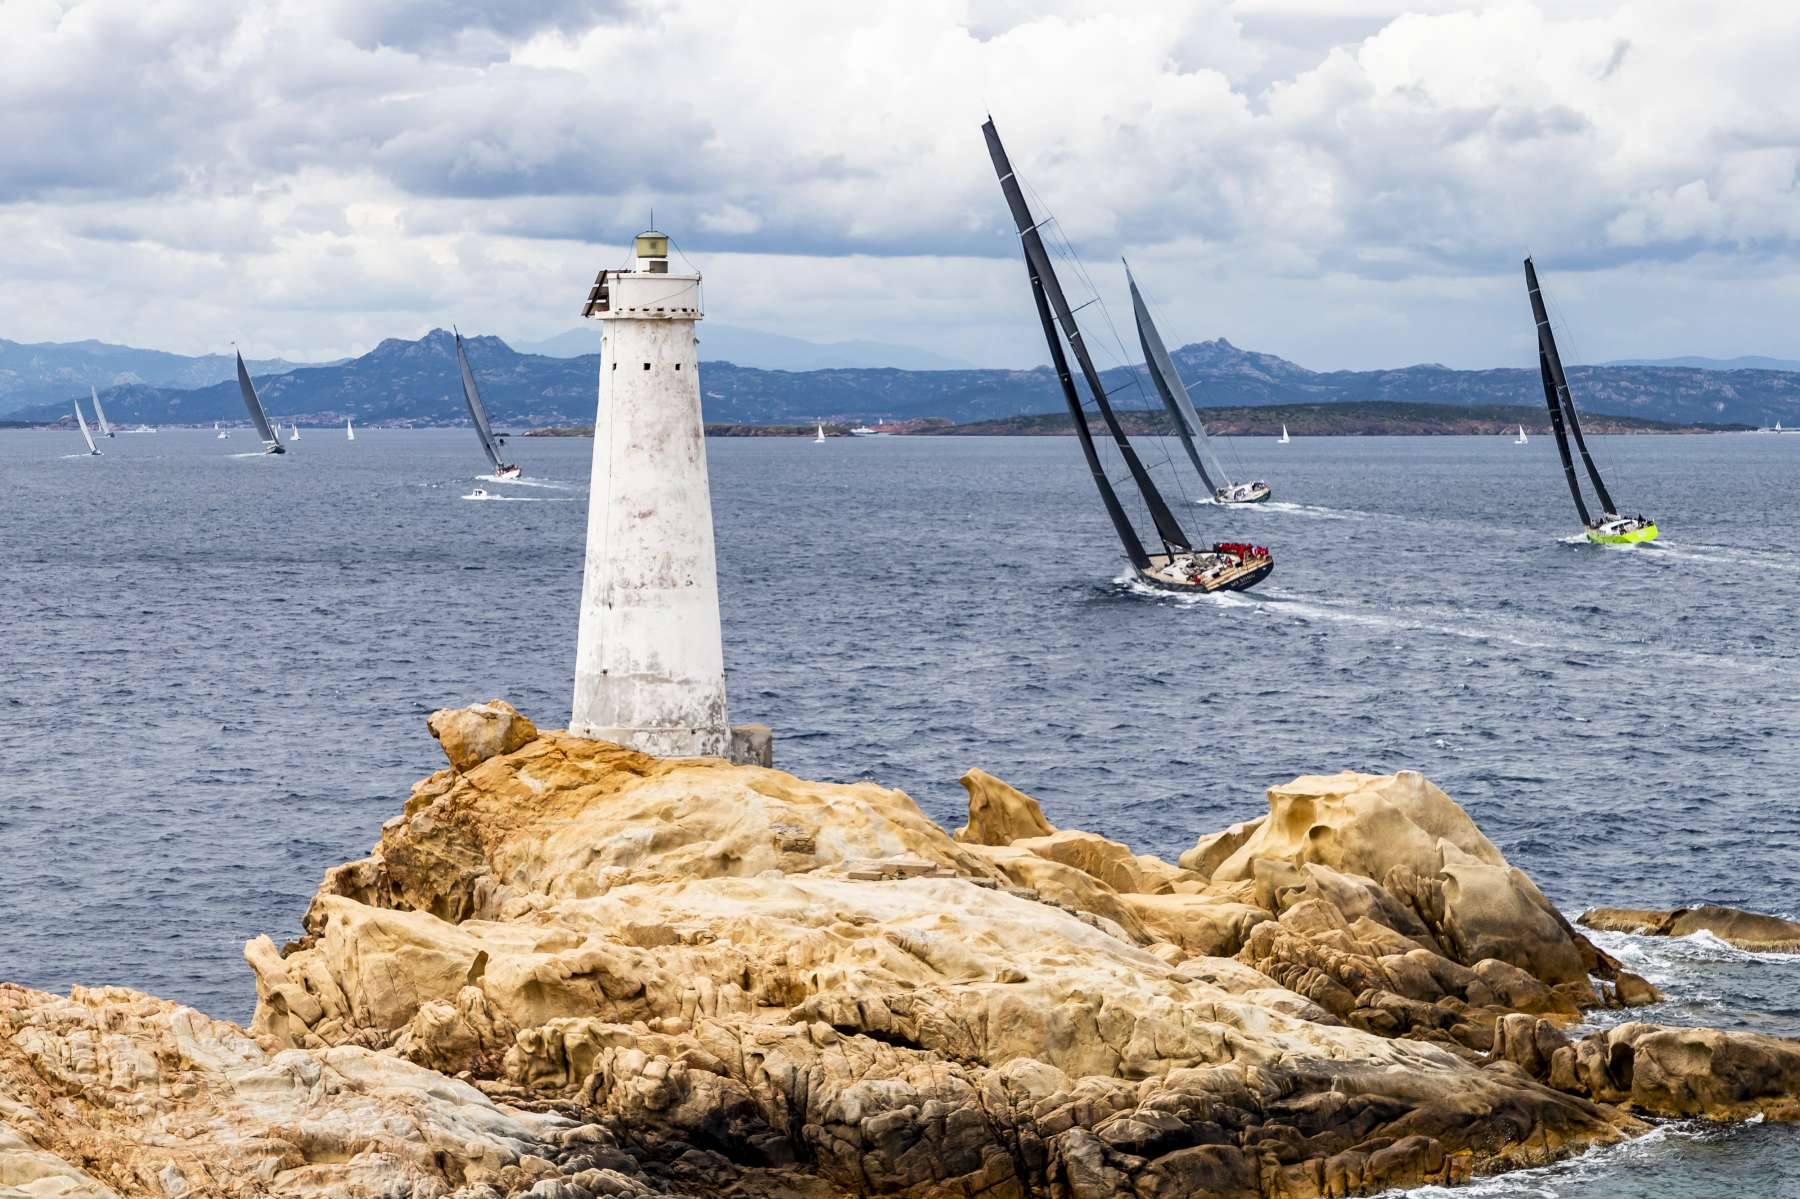 La Loro Piana Superyacht Regatta apre ai multiscafi - NEWS - Yacht Club Costa Smeralda